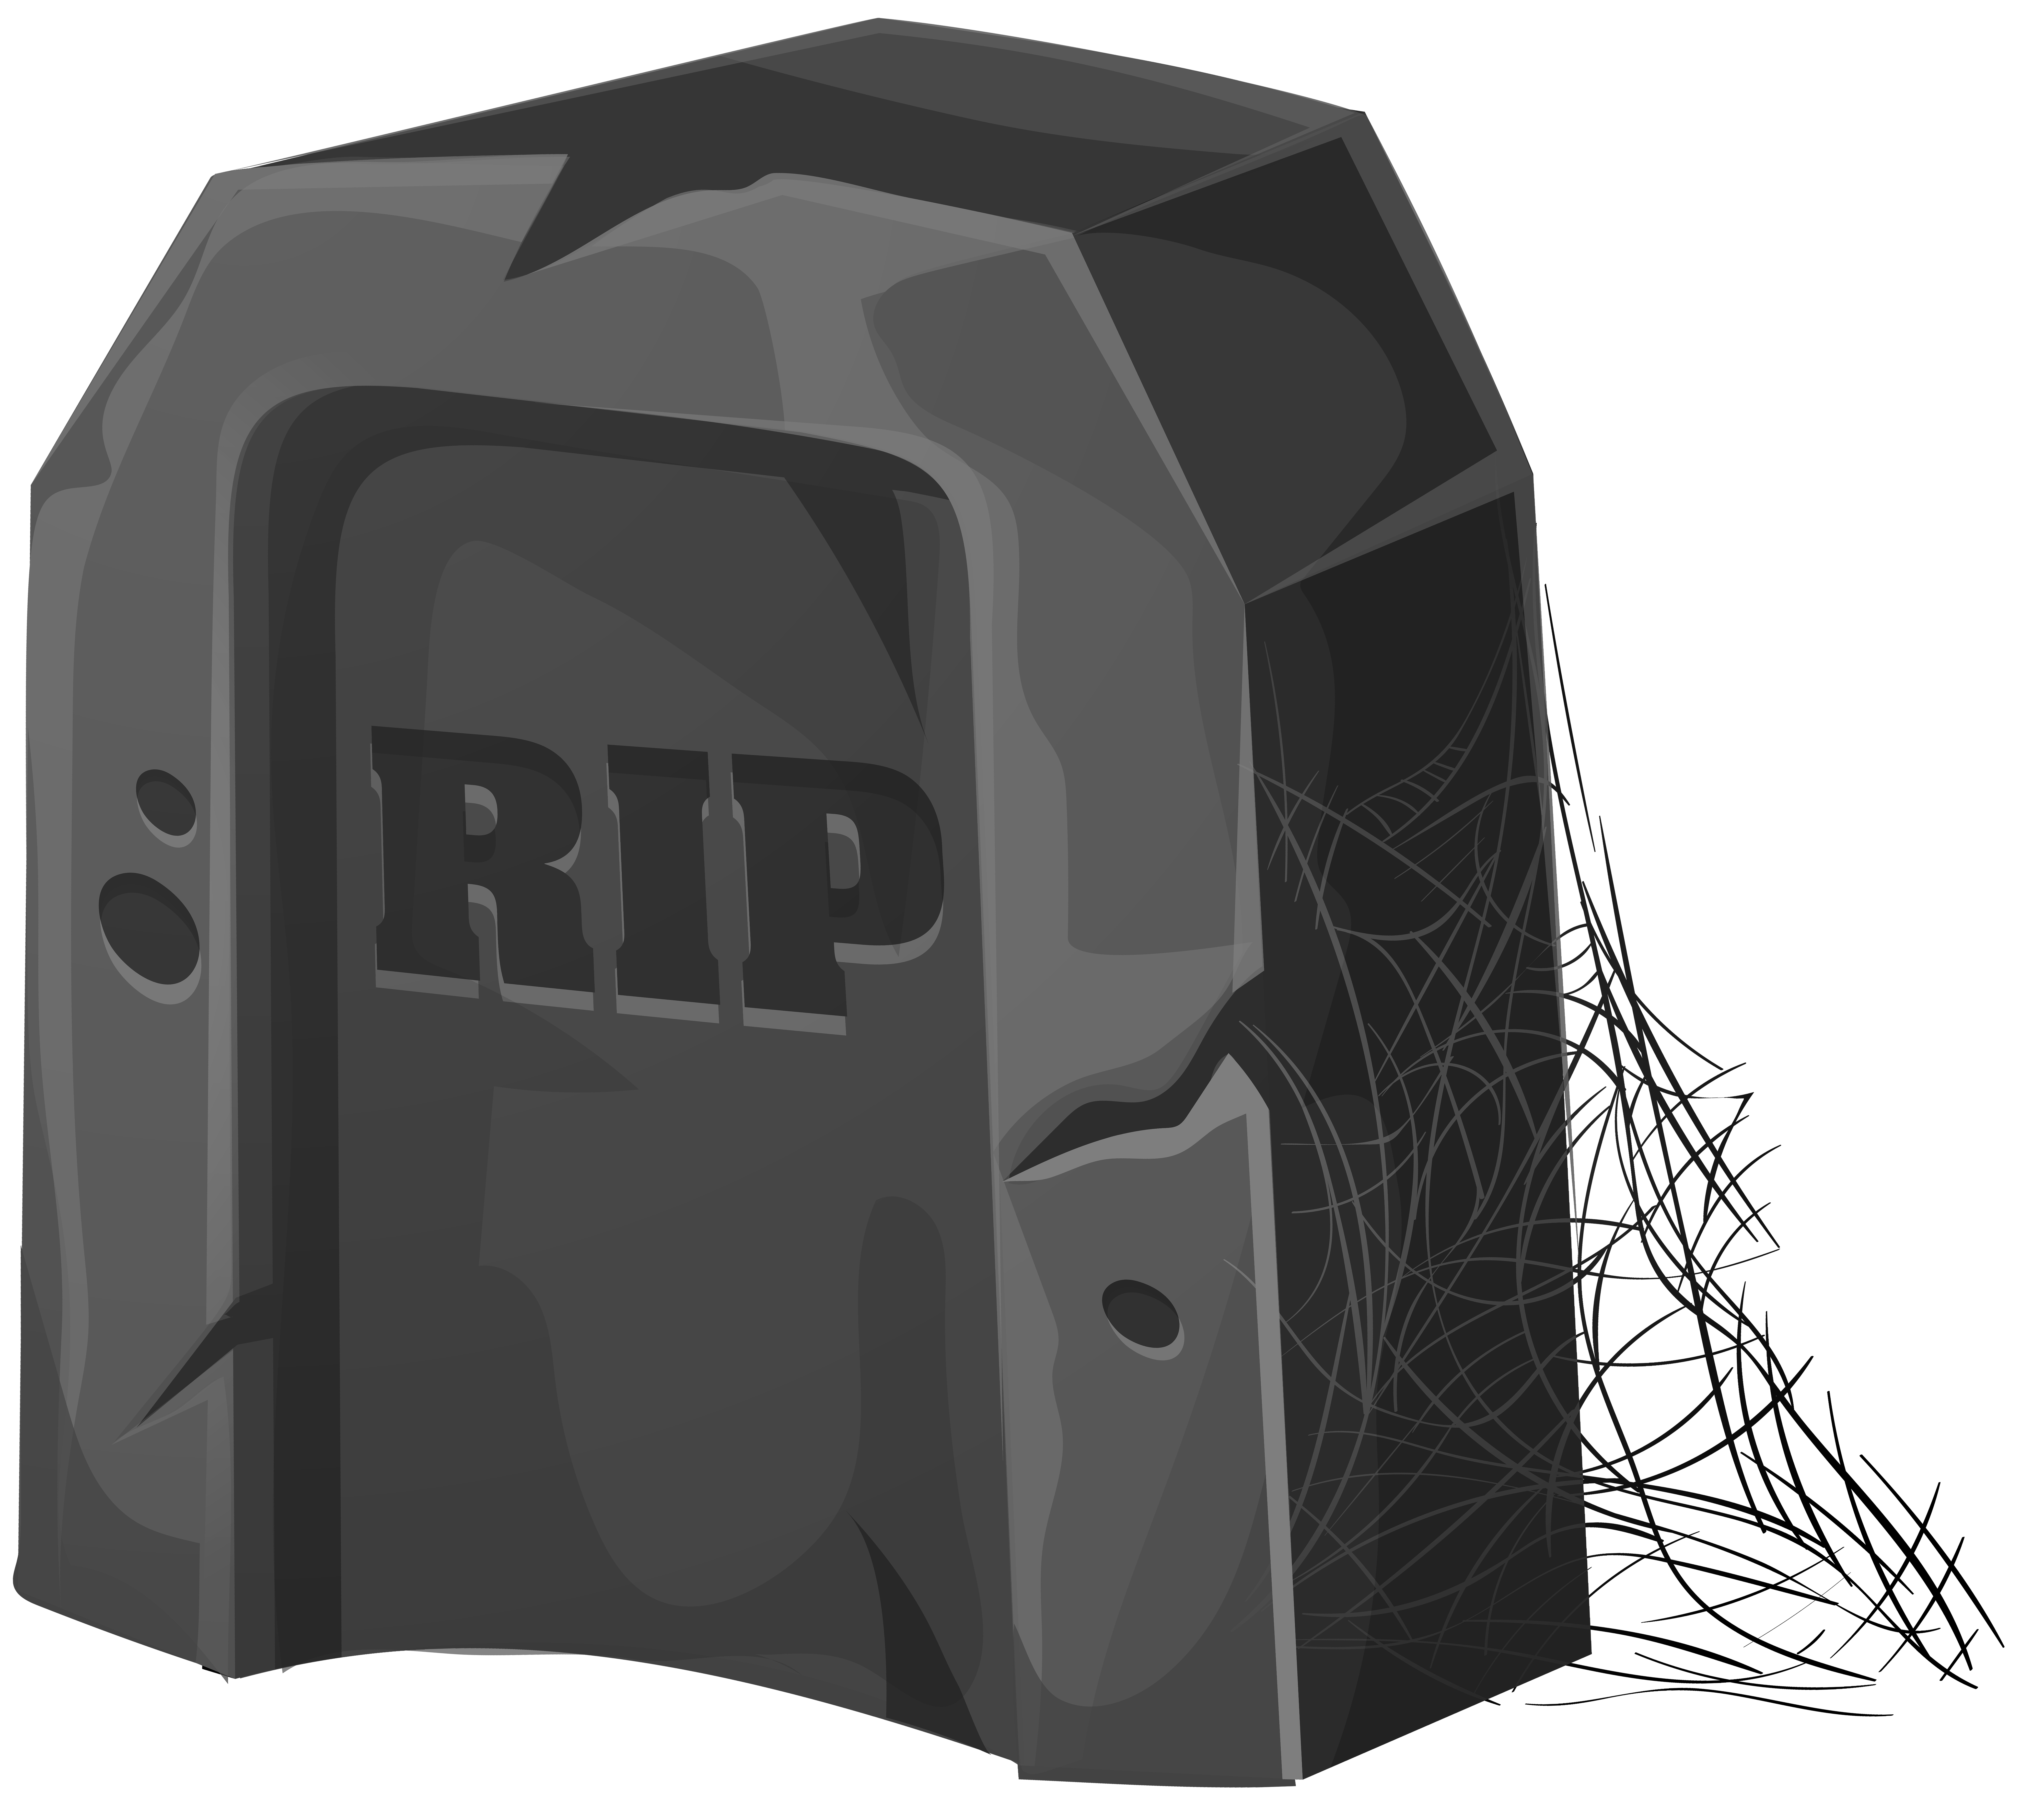 Tombstone clipart transparent Full View PNG size Gallery